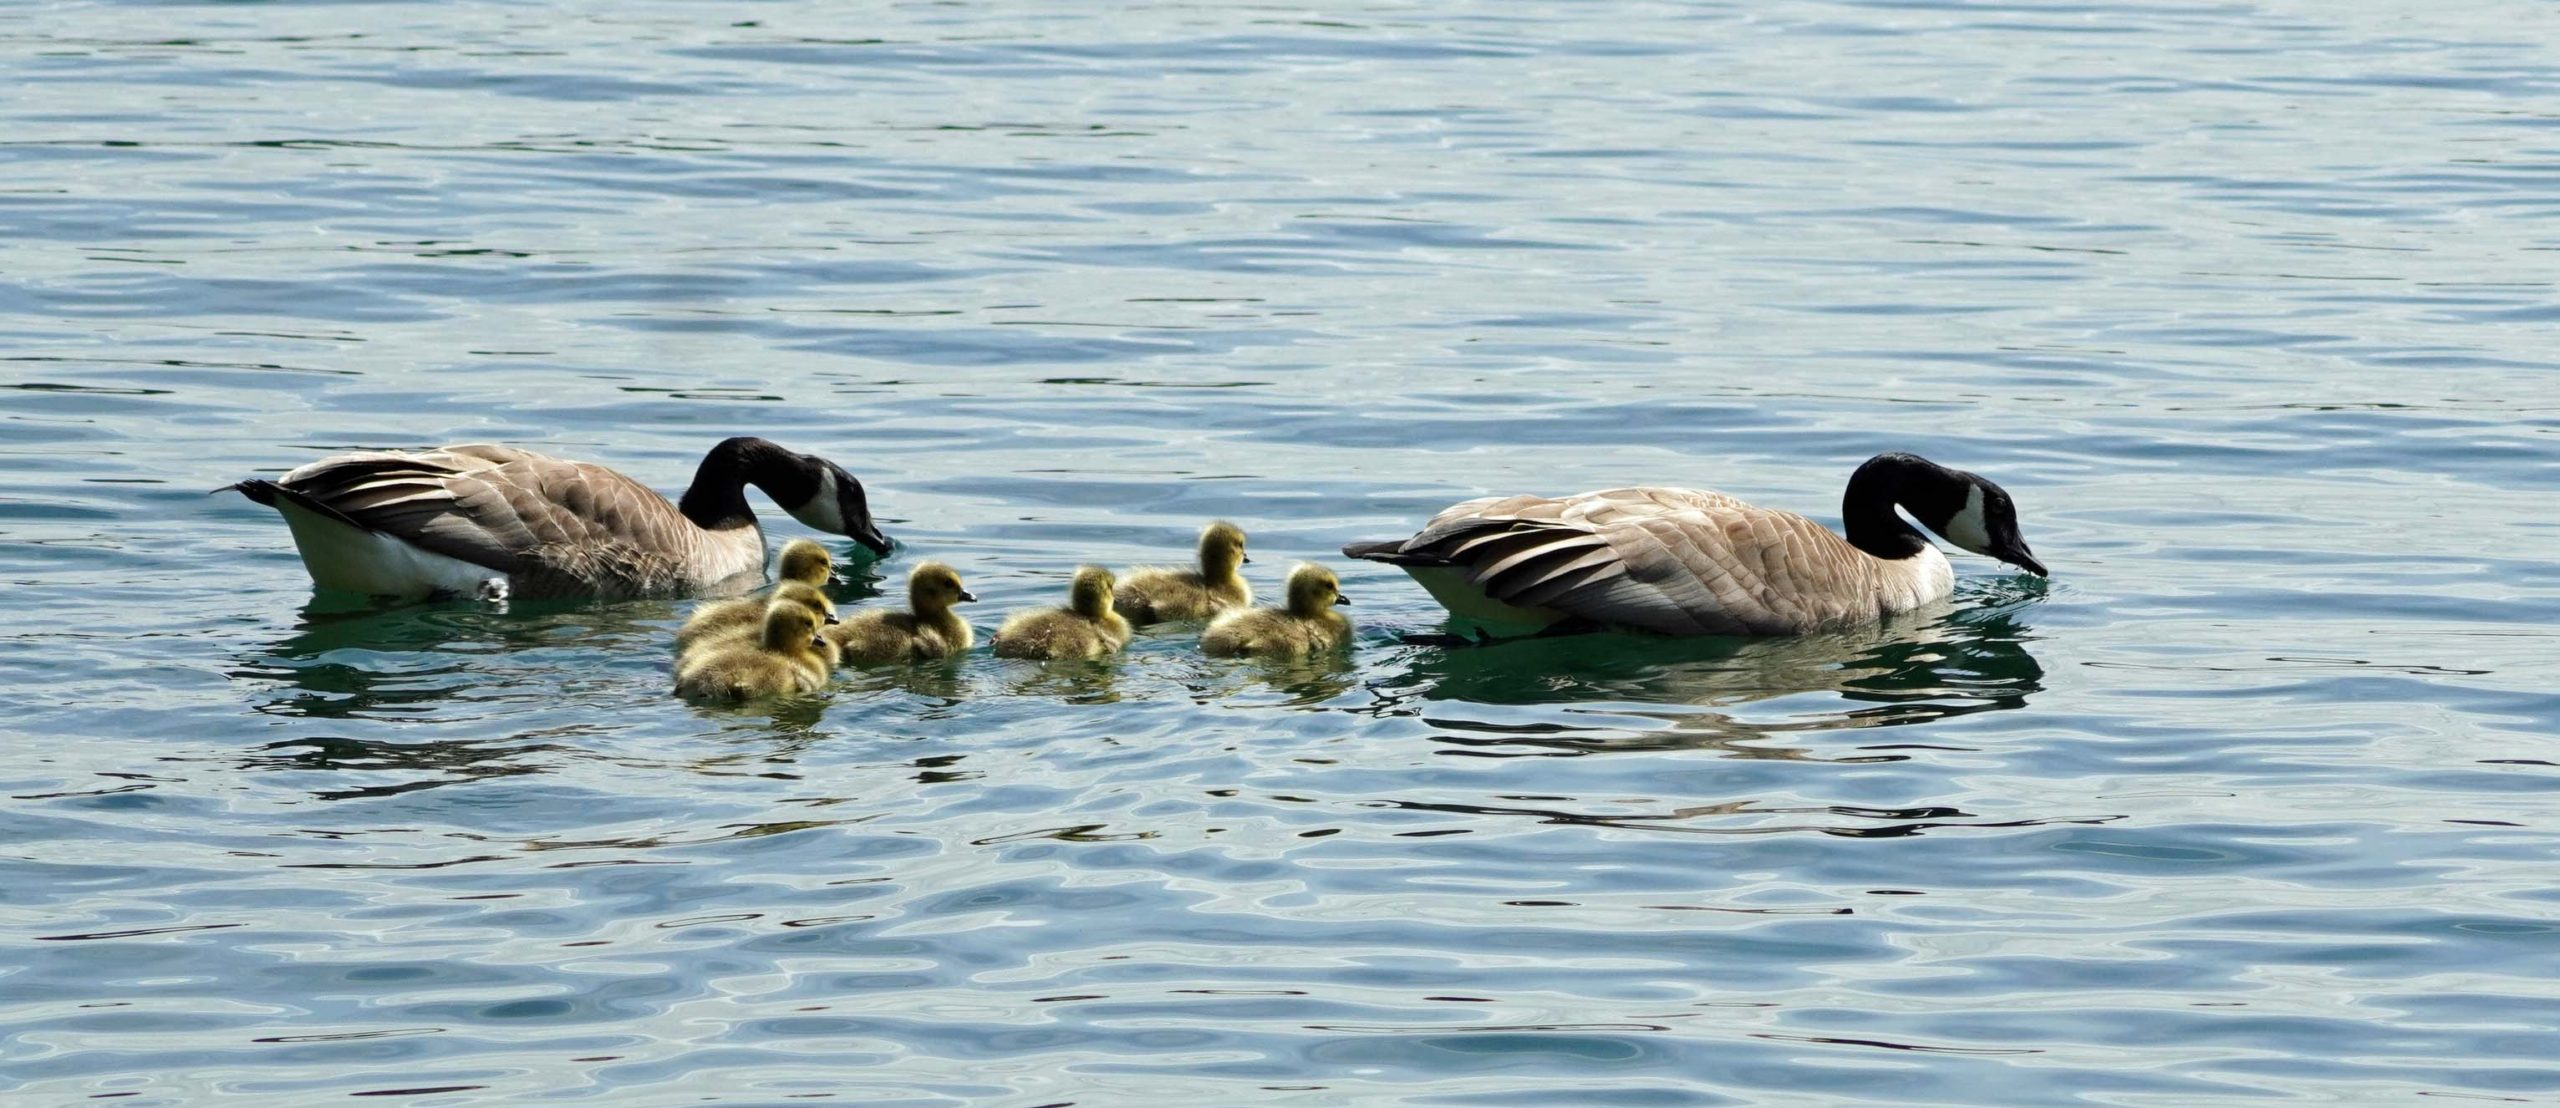 Canada Geese with ducklings